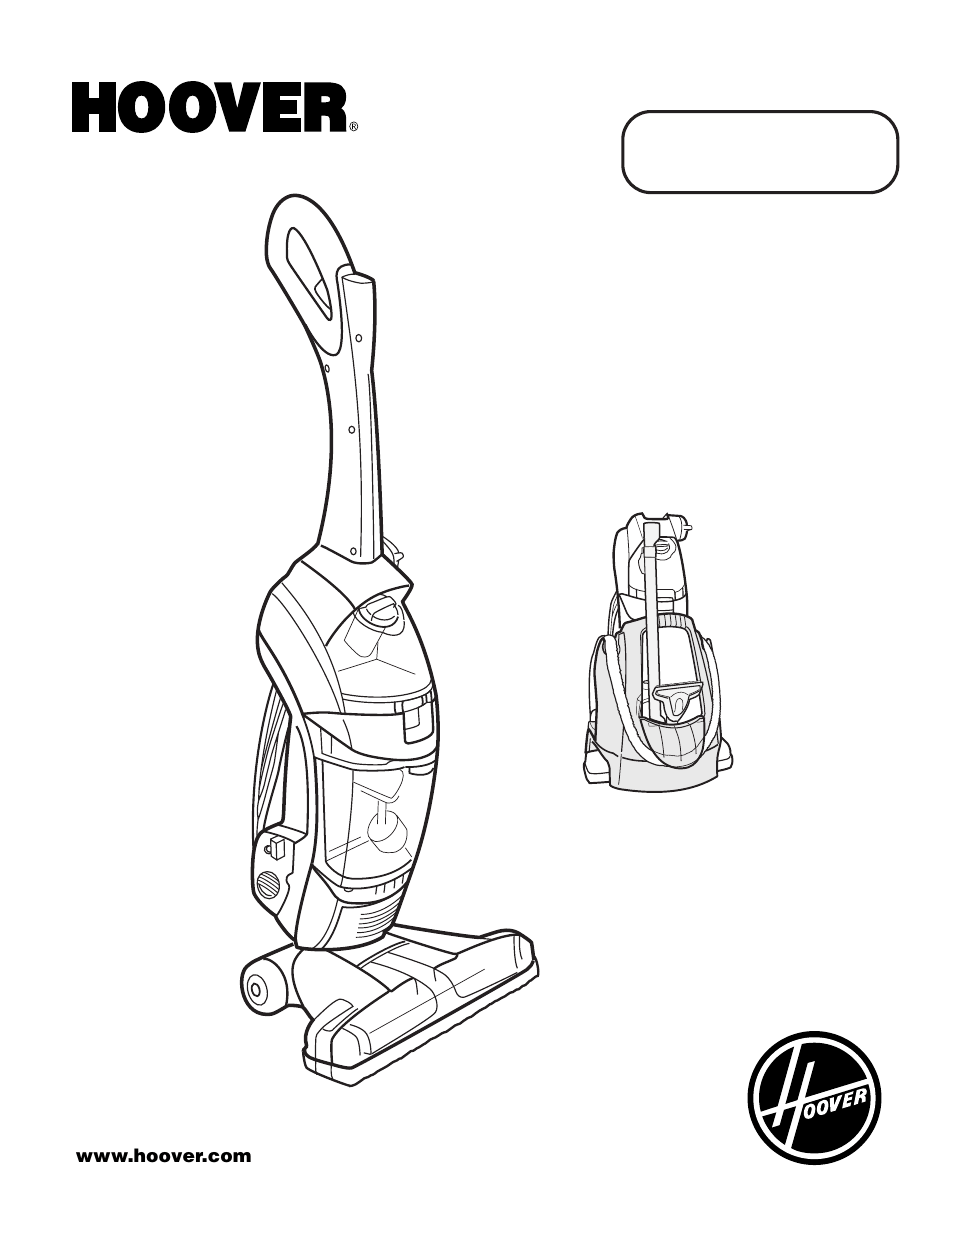 Hoover FloorMate Floor Mate SpinScrub Hard Floor Cleaner